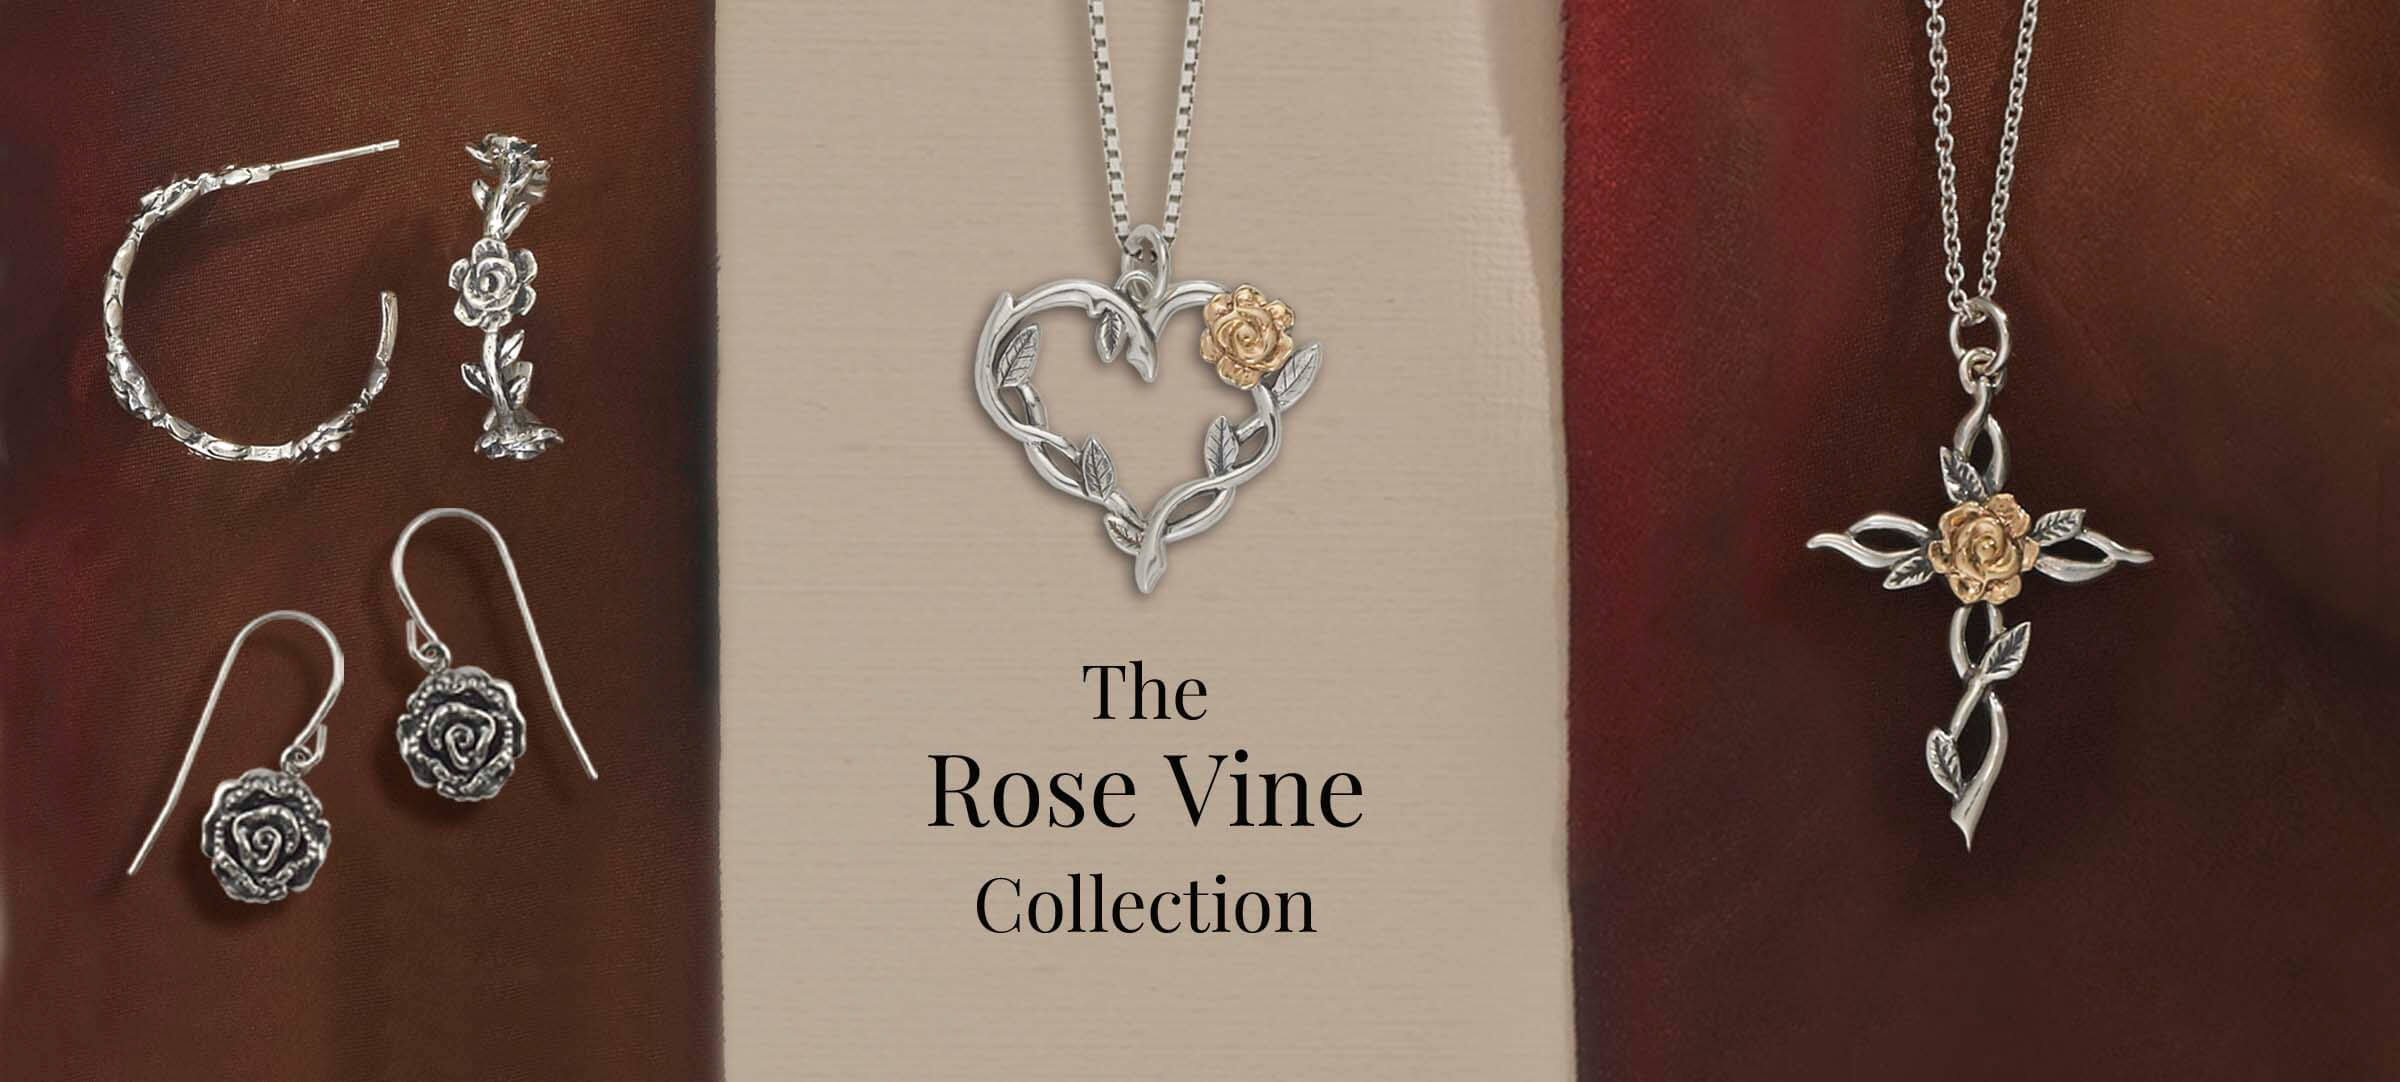 rose-vine-reduced.jpg